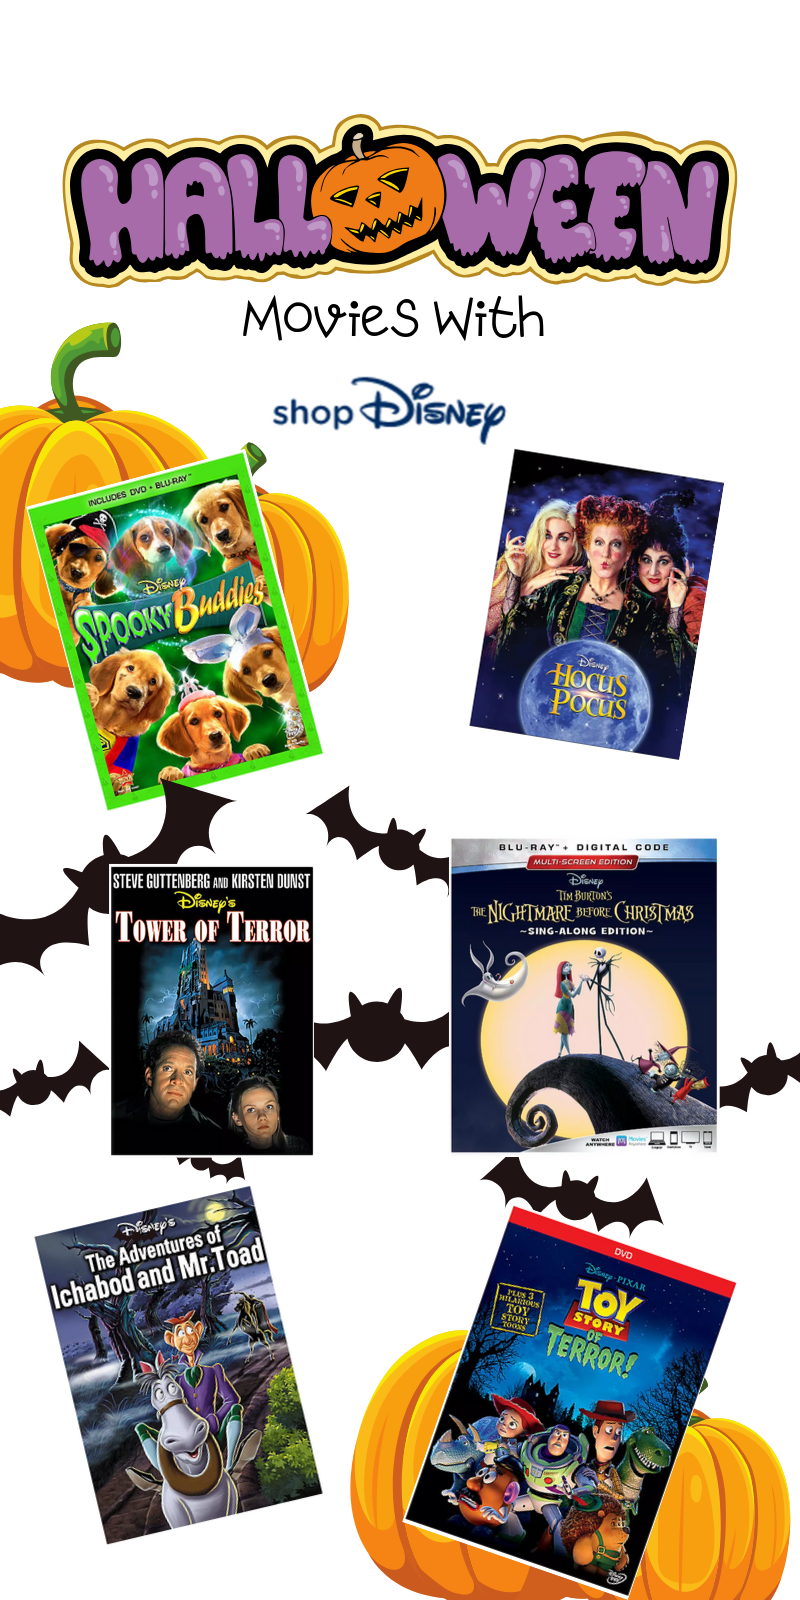 Here are the best in Disney Halloween Movies for the whole family. This fantastic post rounds up the spooky and adorableness of ShopDisney's Halloween Collection for 2019.  #ad @ShopDisney #halloween2019 #disney #disneylove #disneymagic #waltdisney #disneyprincess #mickeymouse #disneyphoto #disneylife #disneyfan #mickey #disneyaddict #disnerd #starwars #halloween